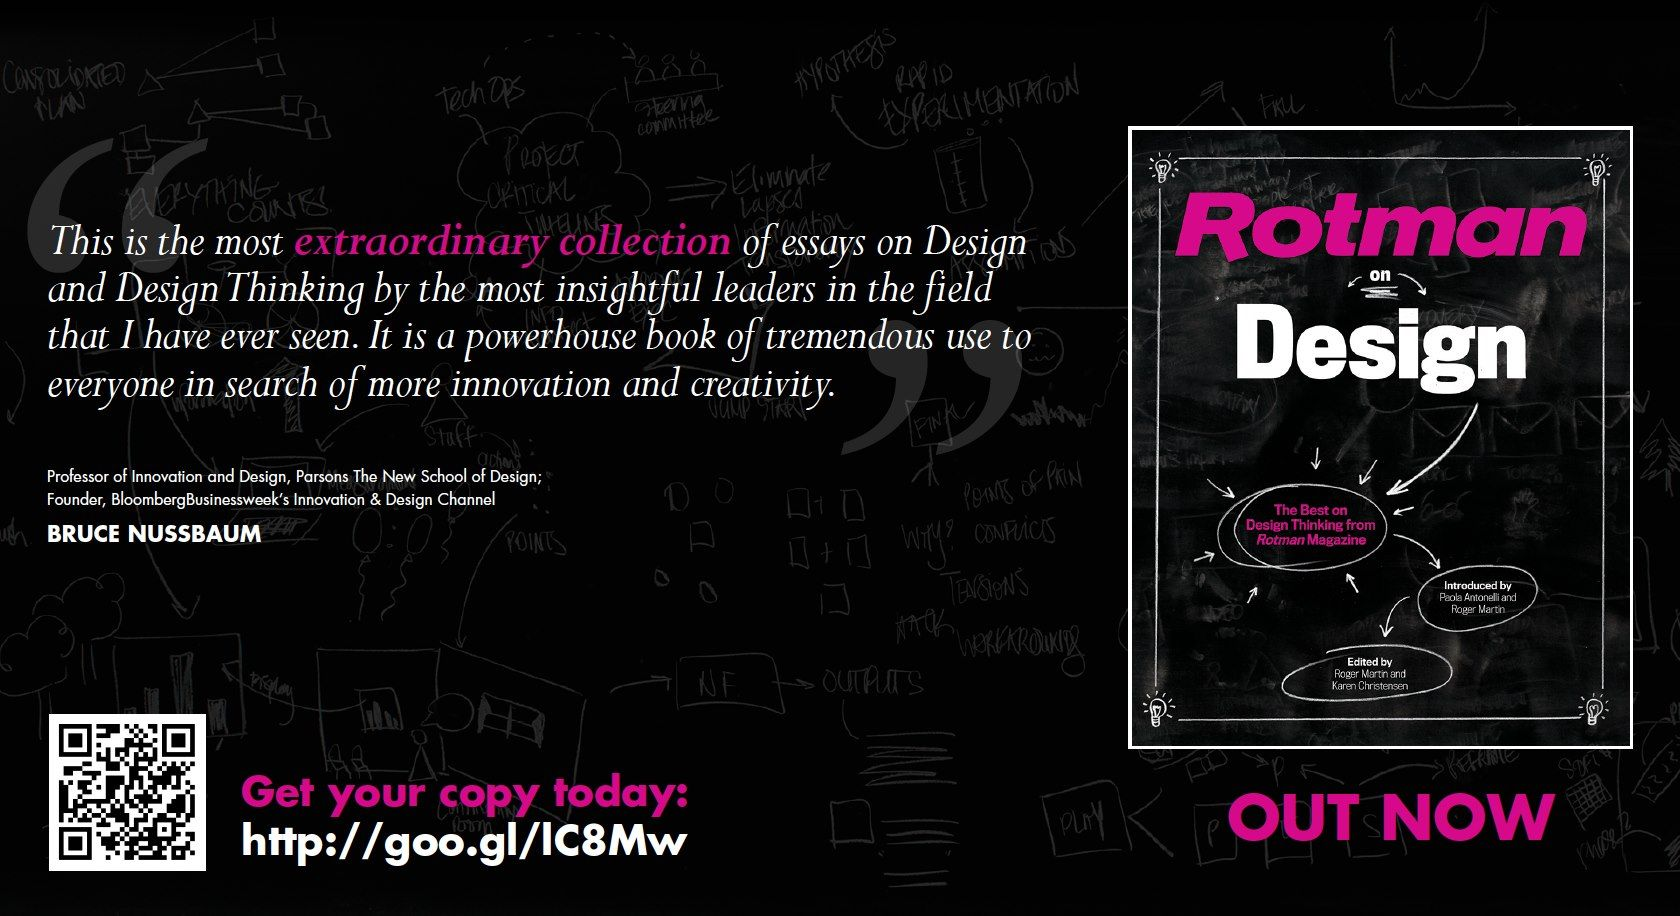 best images about rotman on design san diego a 17 best images about rotman on design san diego a well and magazines